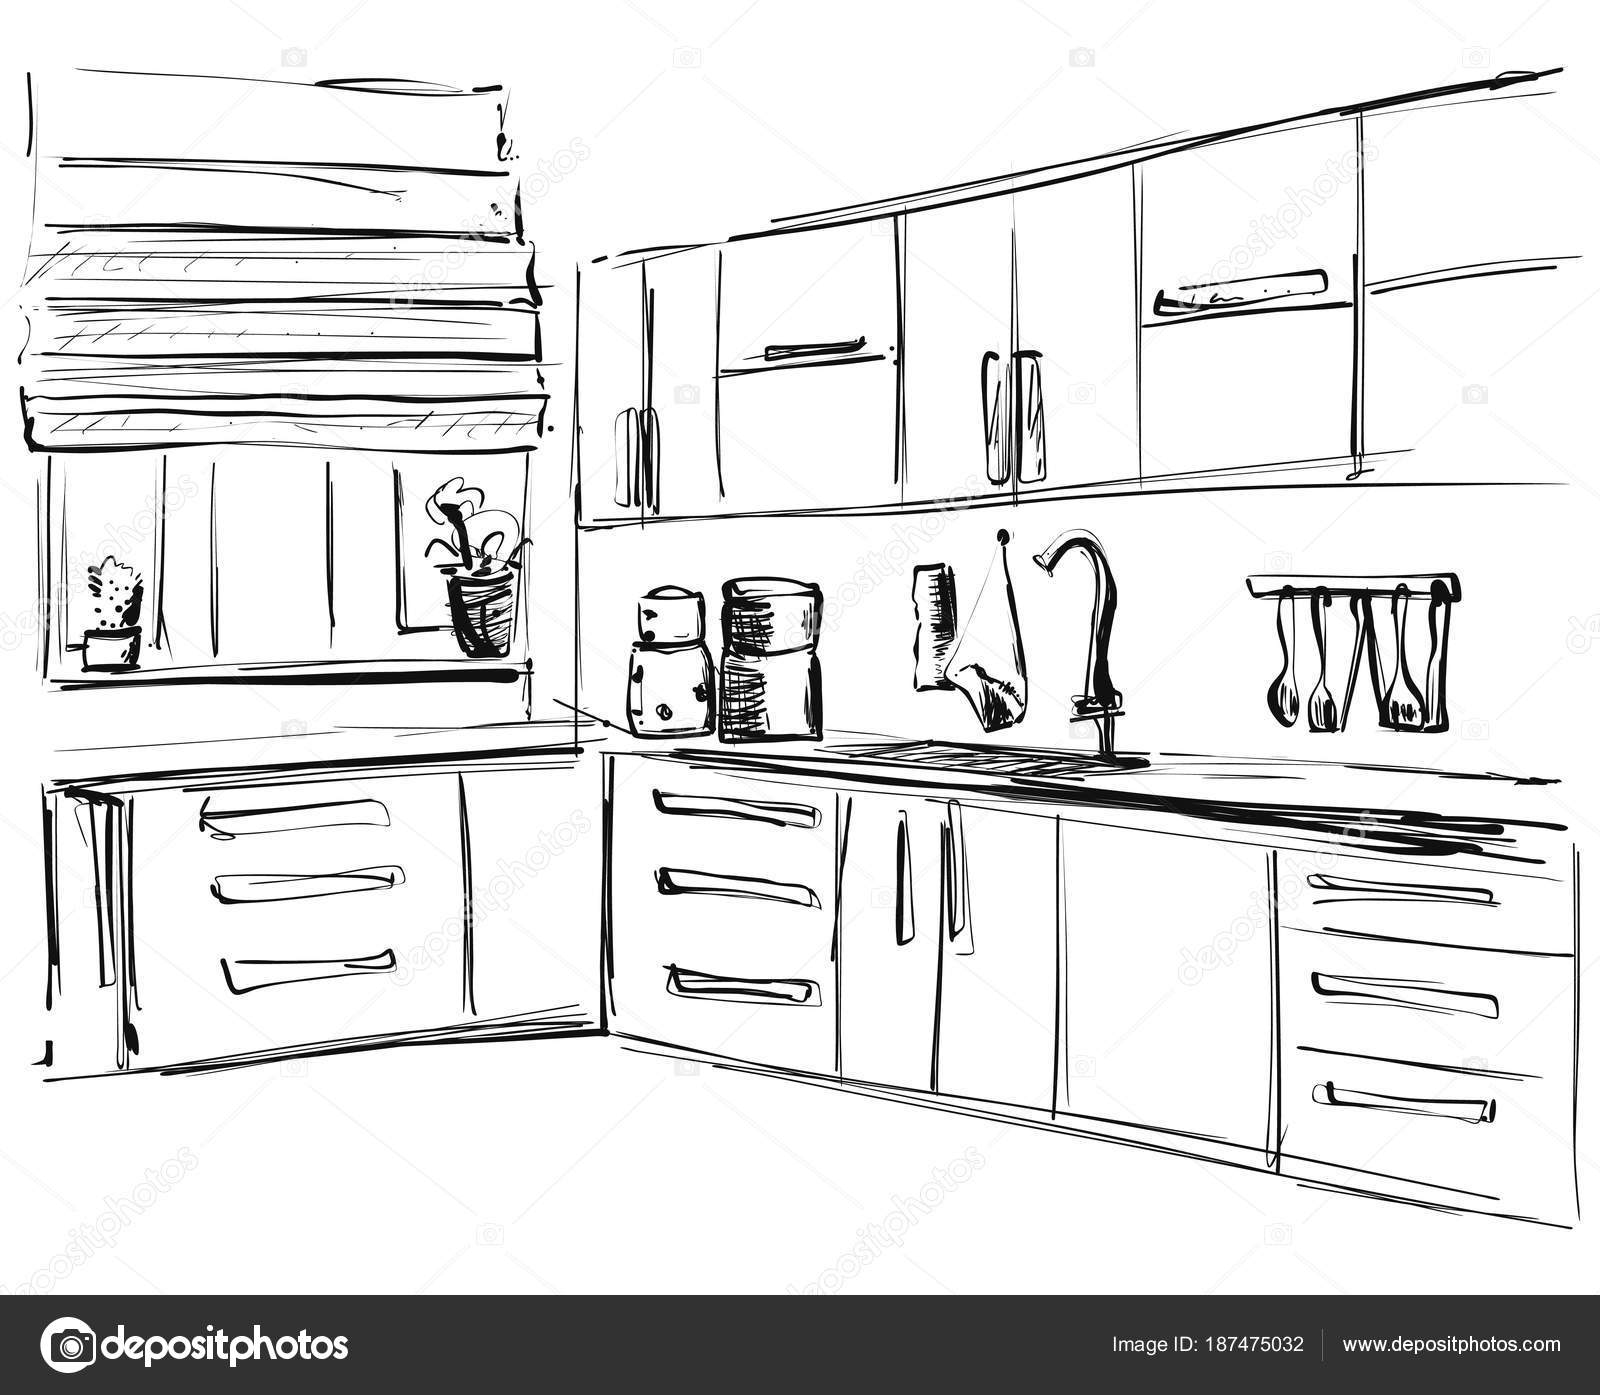 3d Sketch Small Kitchens And Islands: Kitchen Interior Drawing, Vector Illustration. Furniture